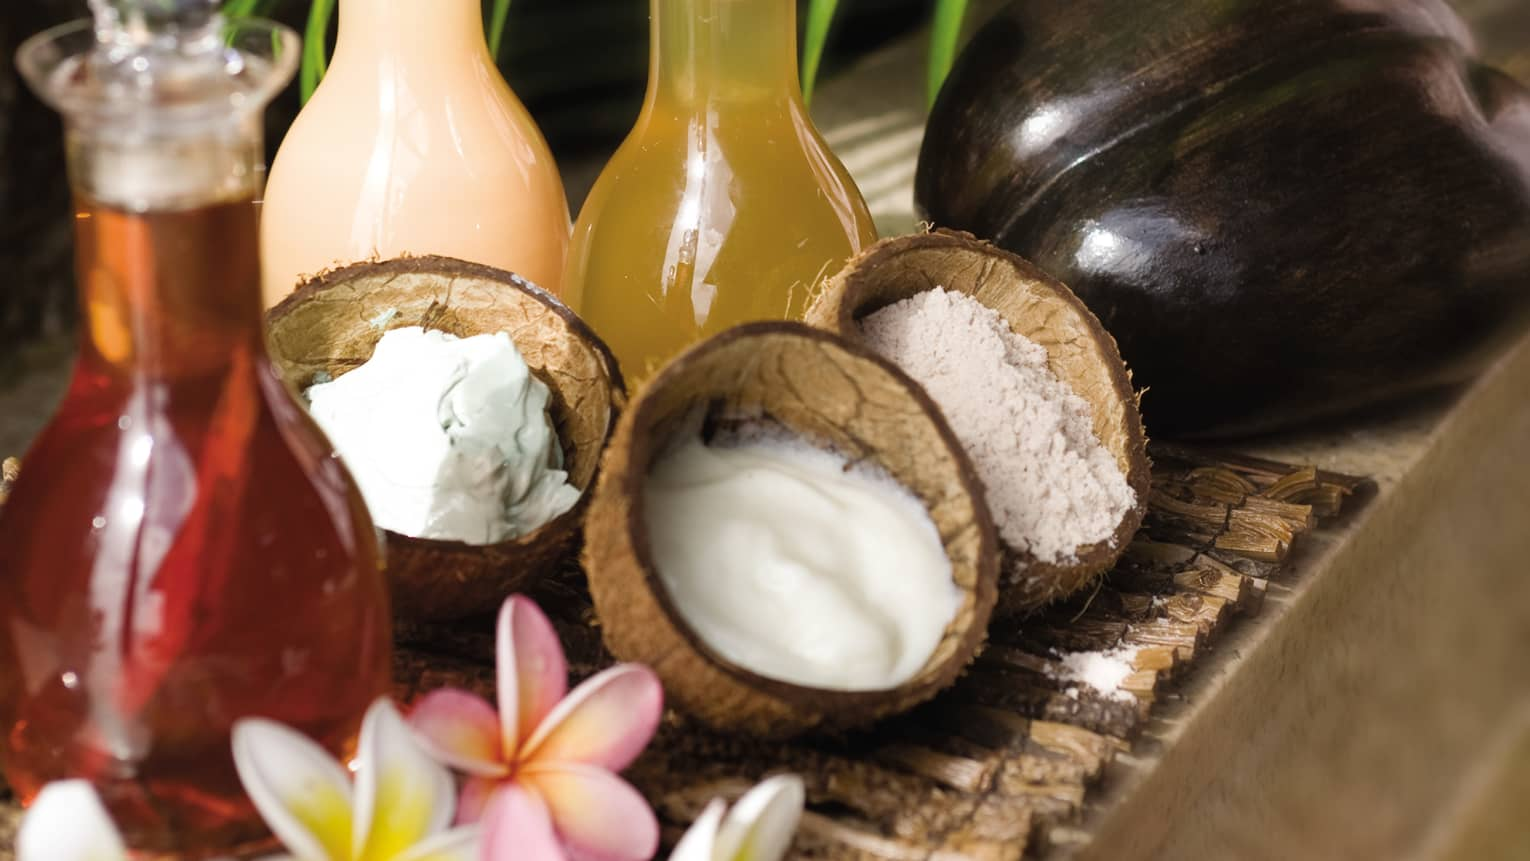 Three open coconut shells filled with white creams and lotions, glass bottles with infused oils, flowers